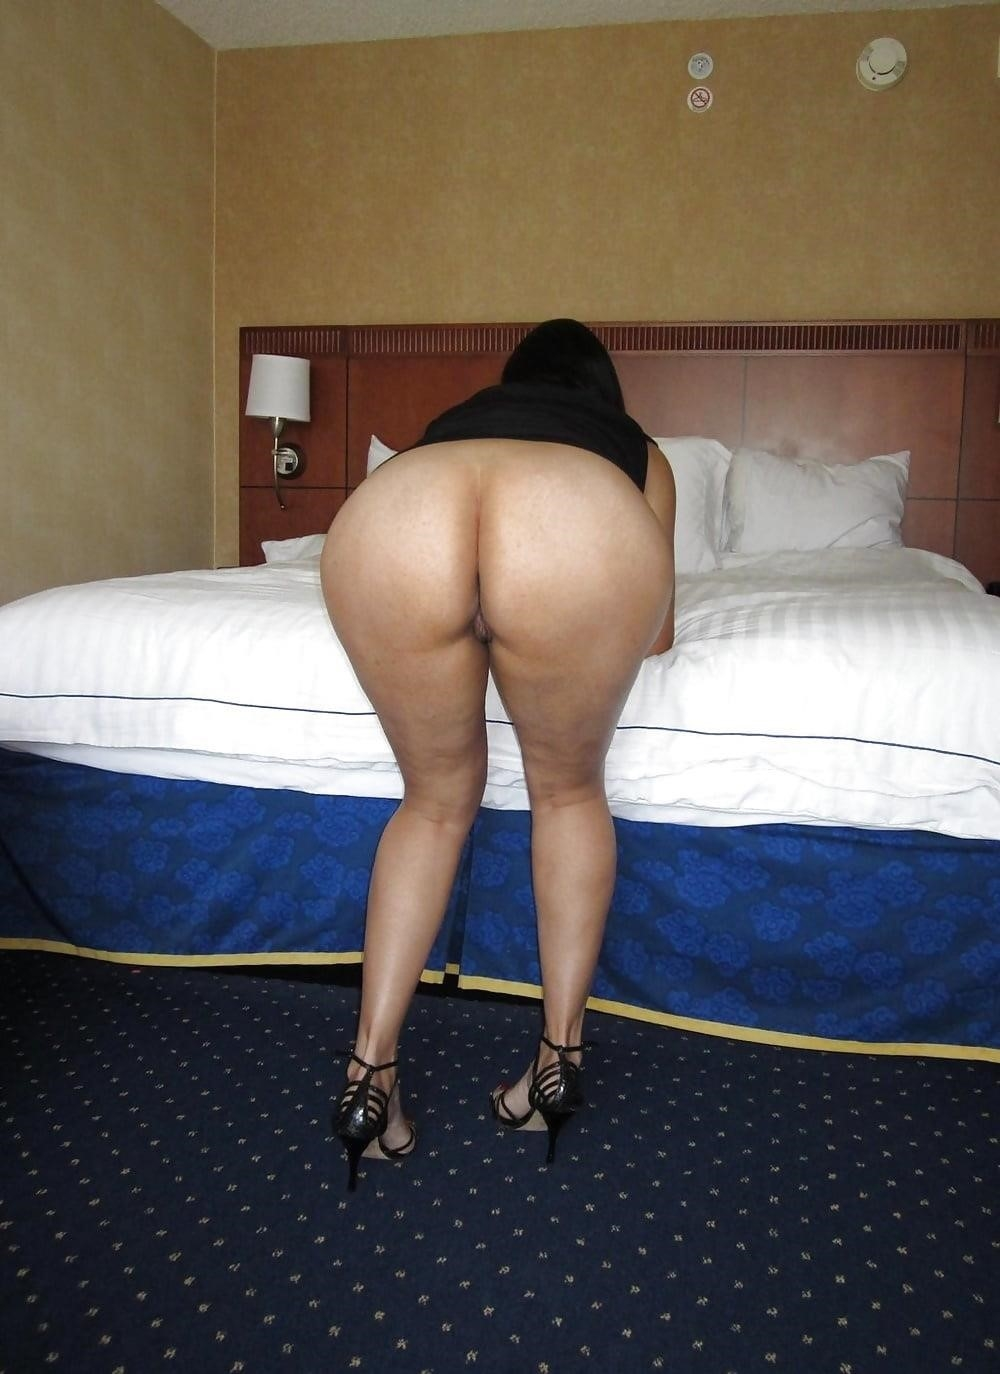 Girls out west orgy-2699